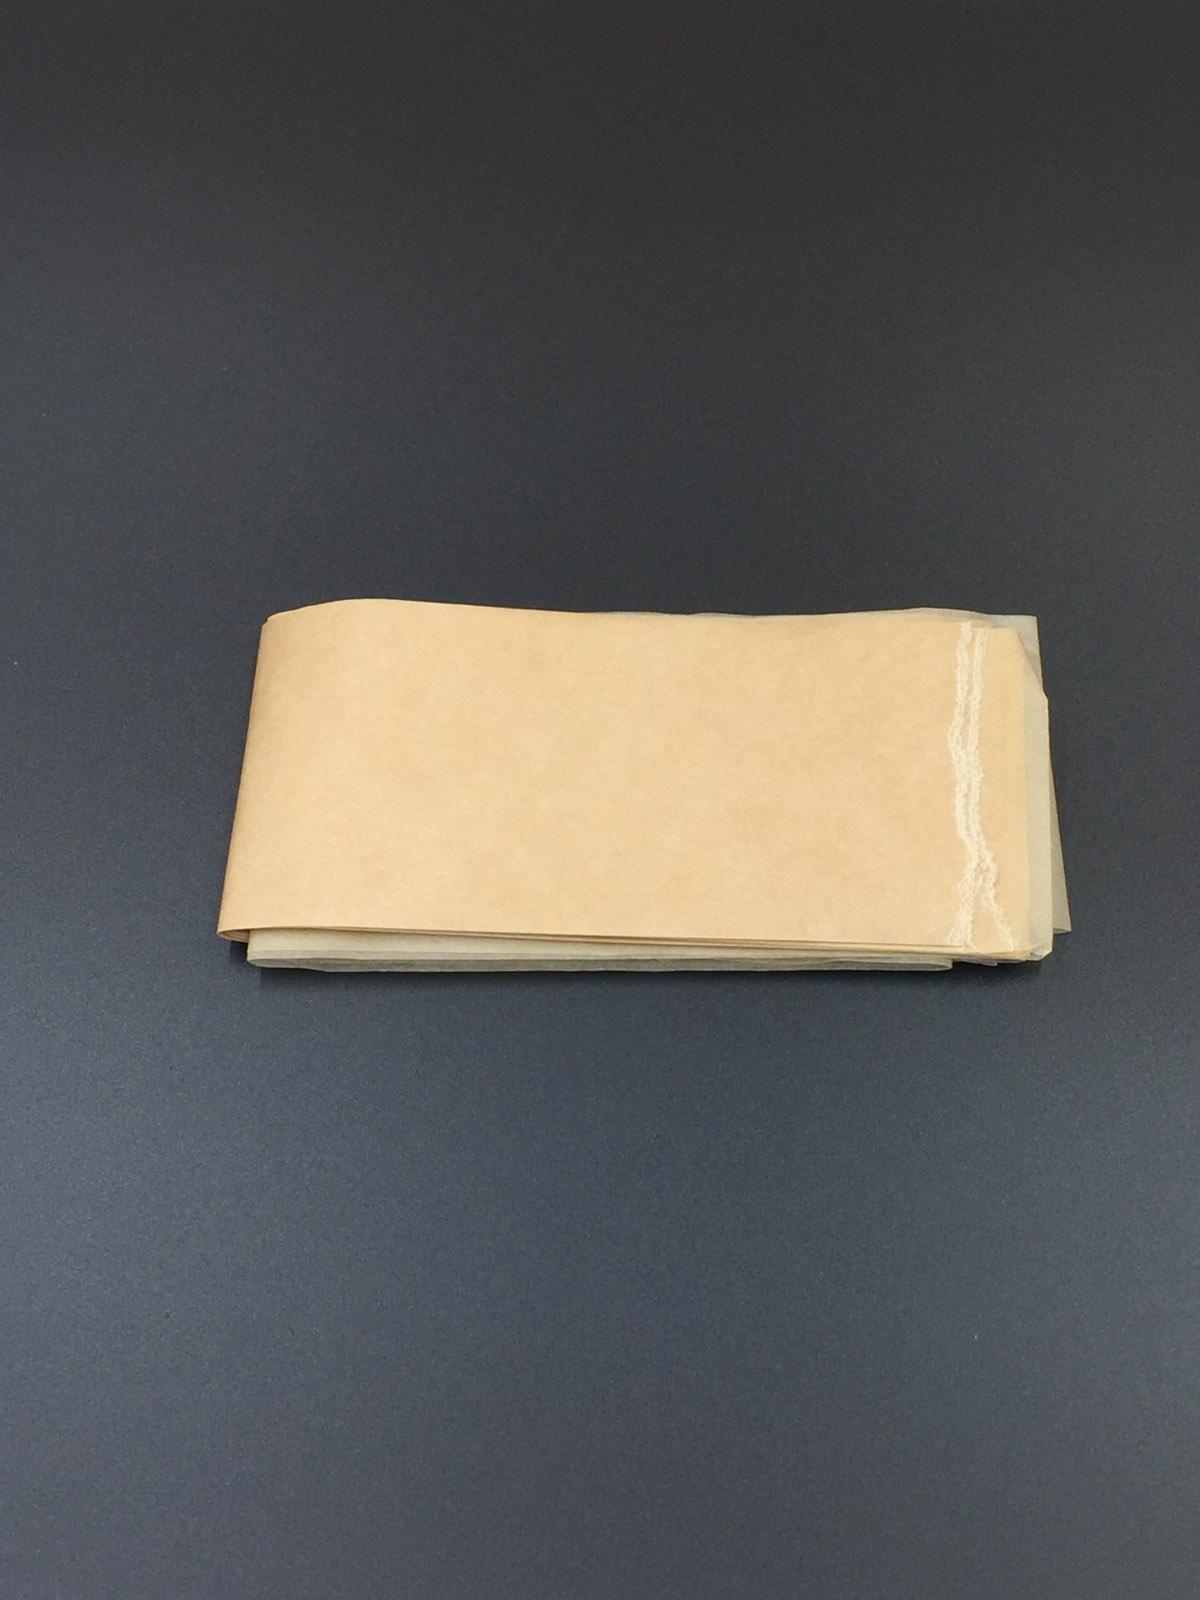 king slim size brown color rolling paper